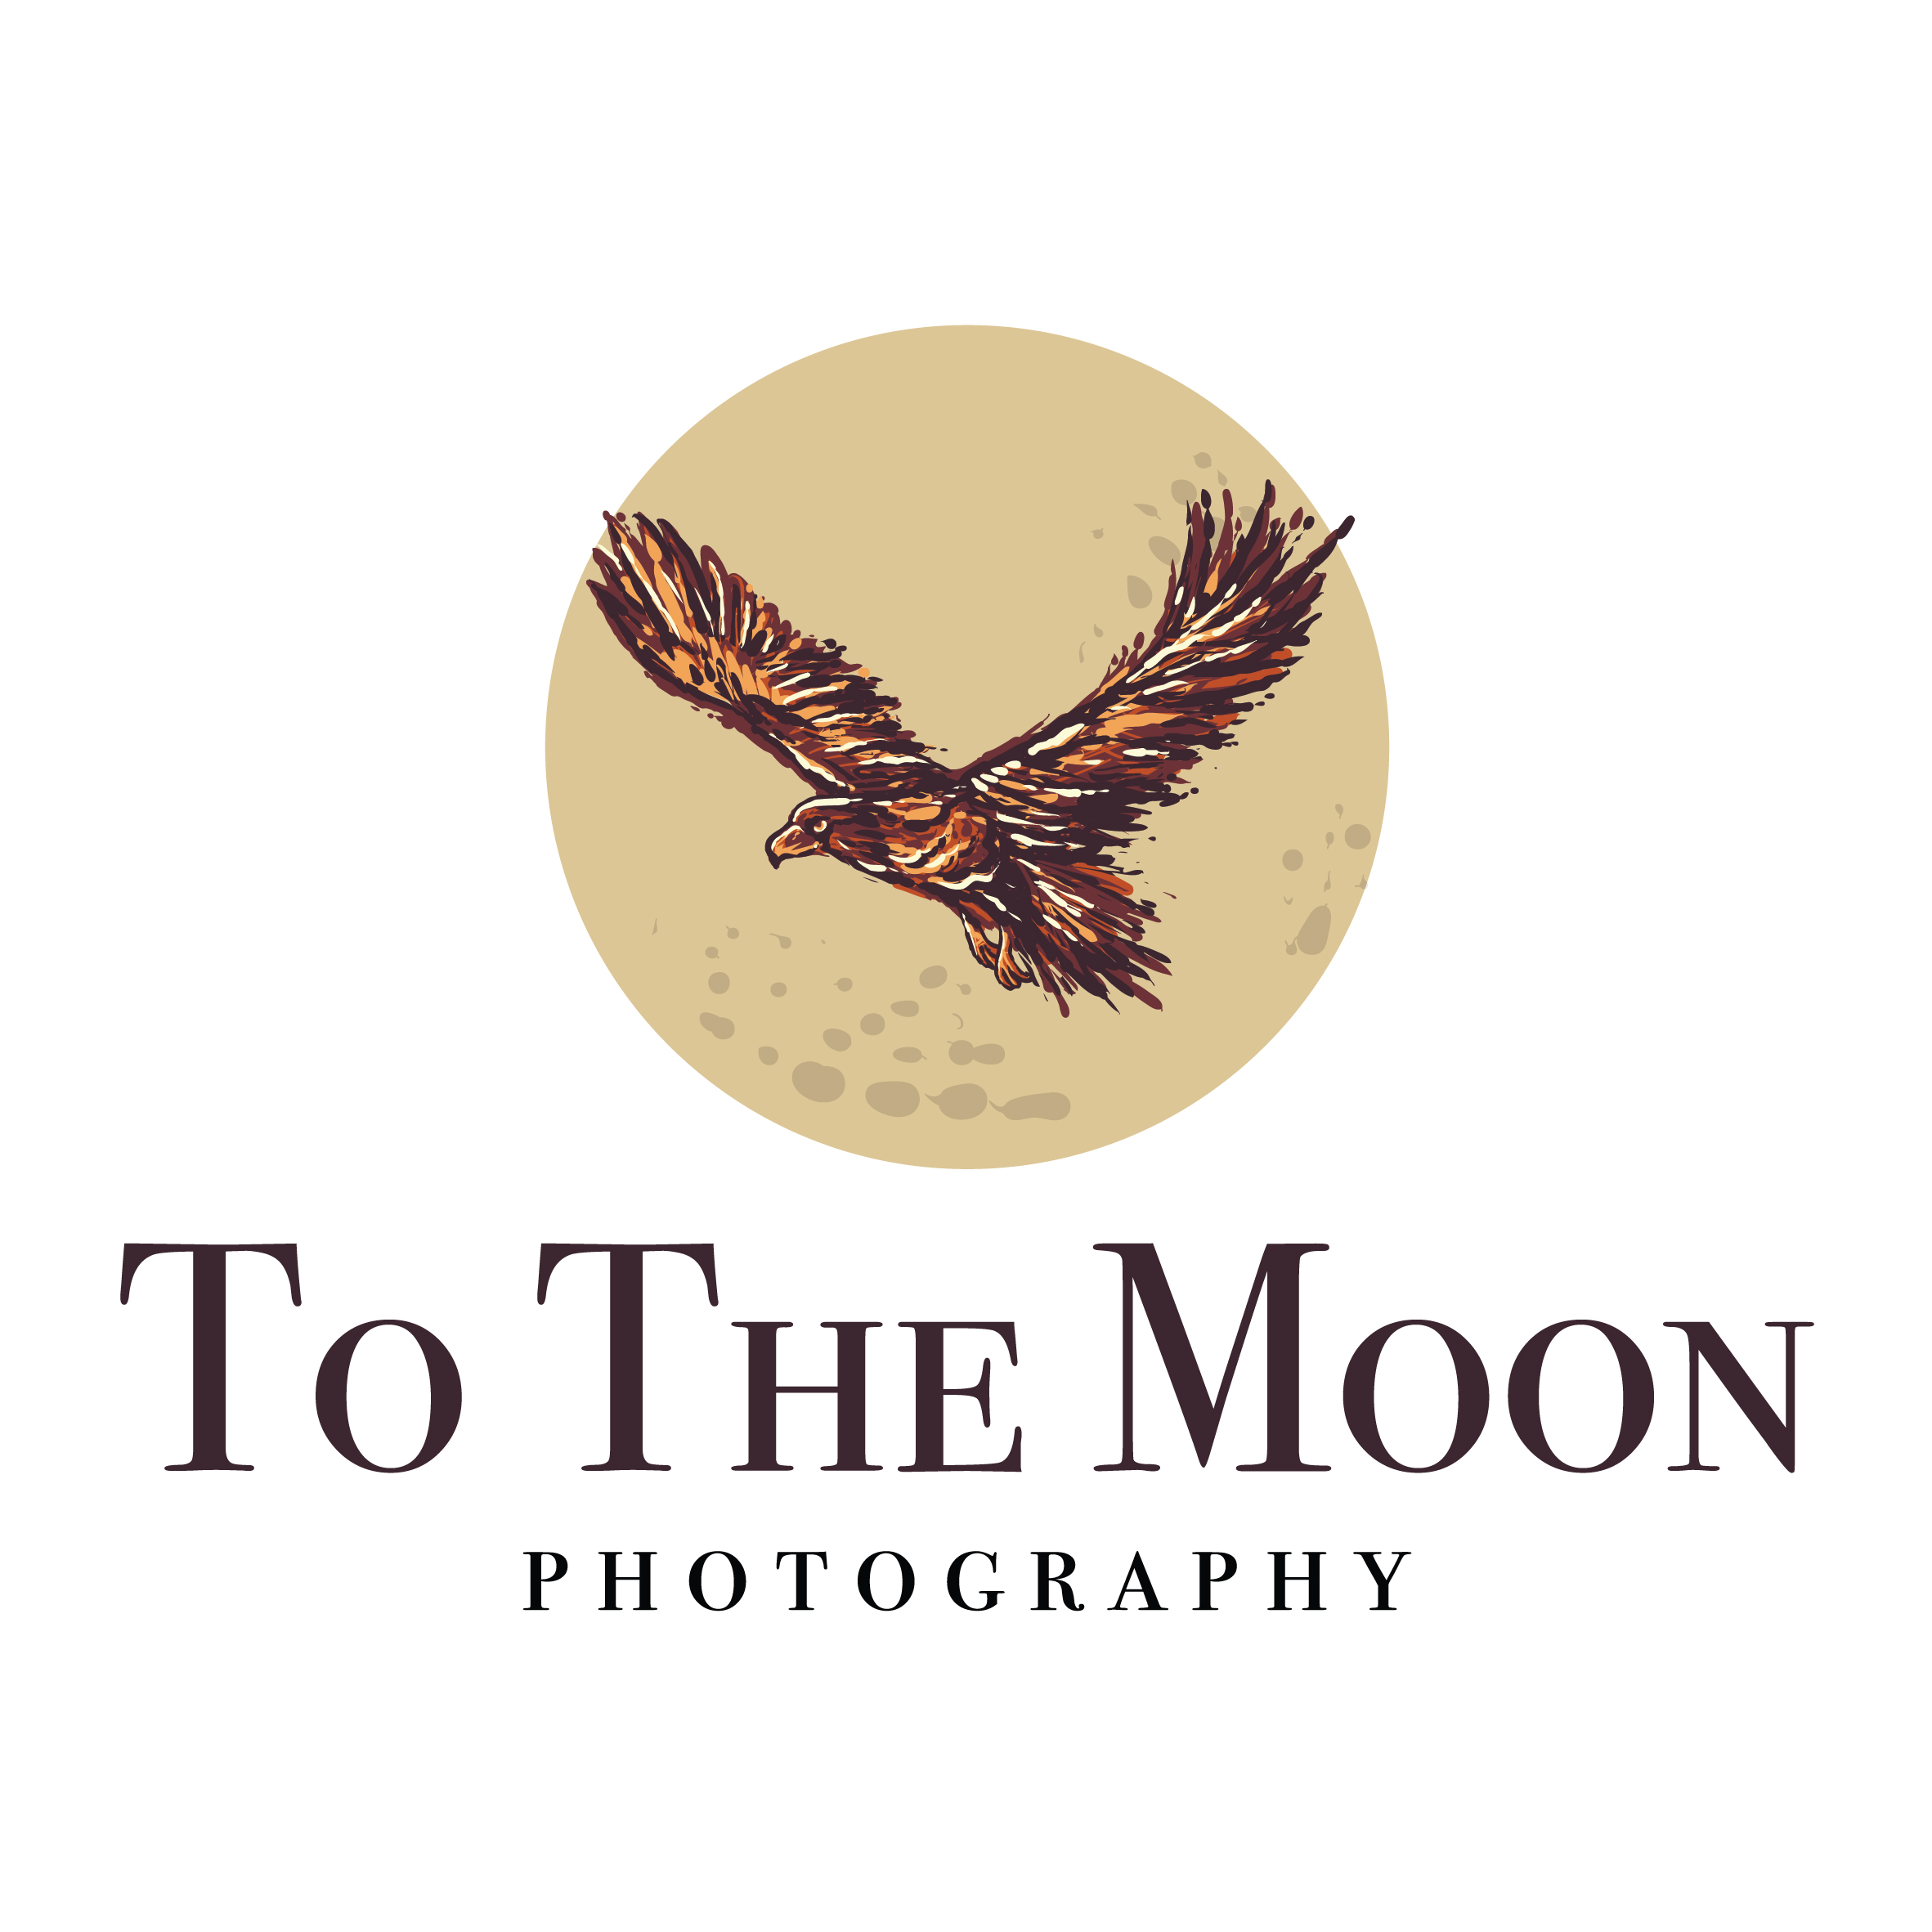 TO THE MOON -01-01.jpg